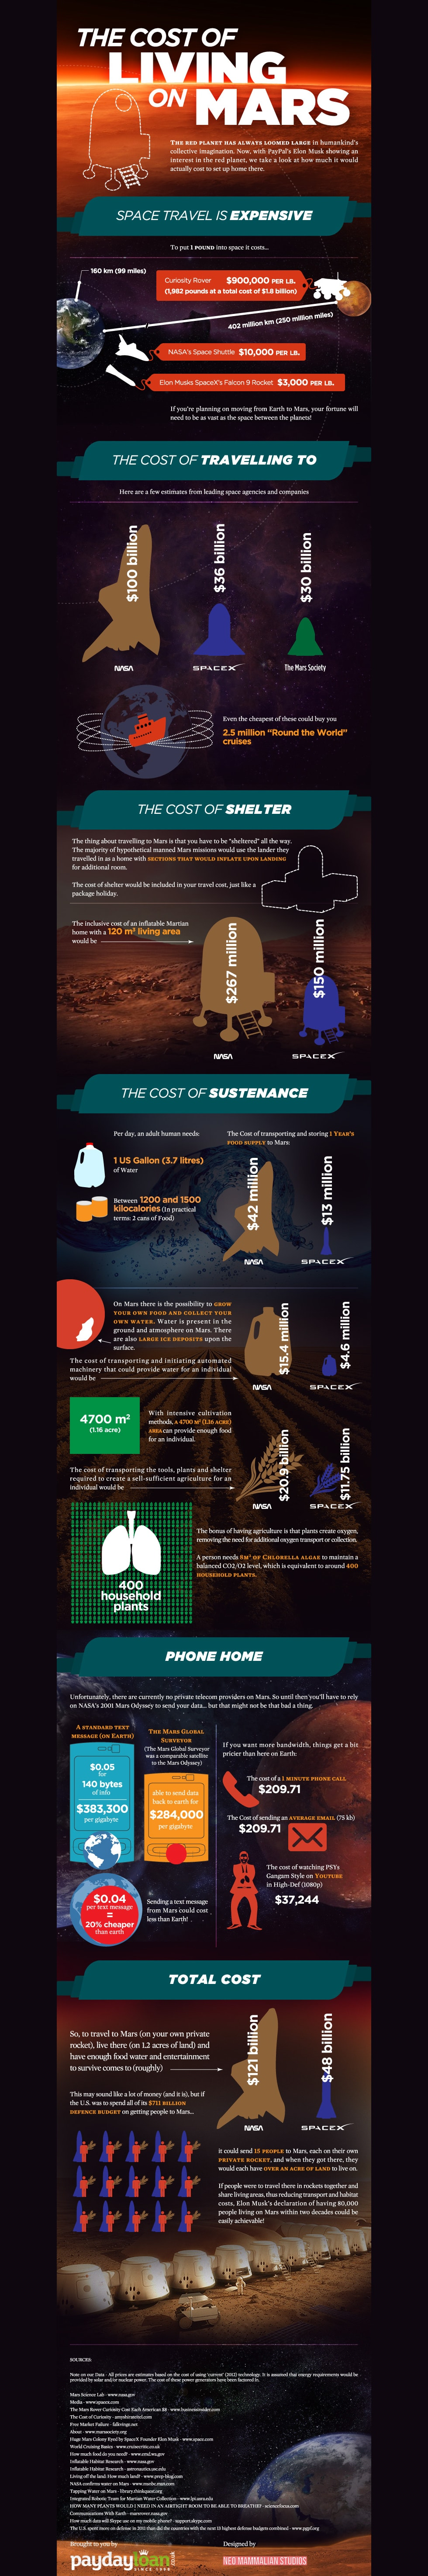 How Much Money Would It Cost For You To Live On Mars? [Infographic]